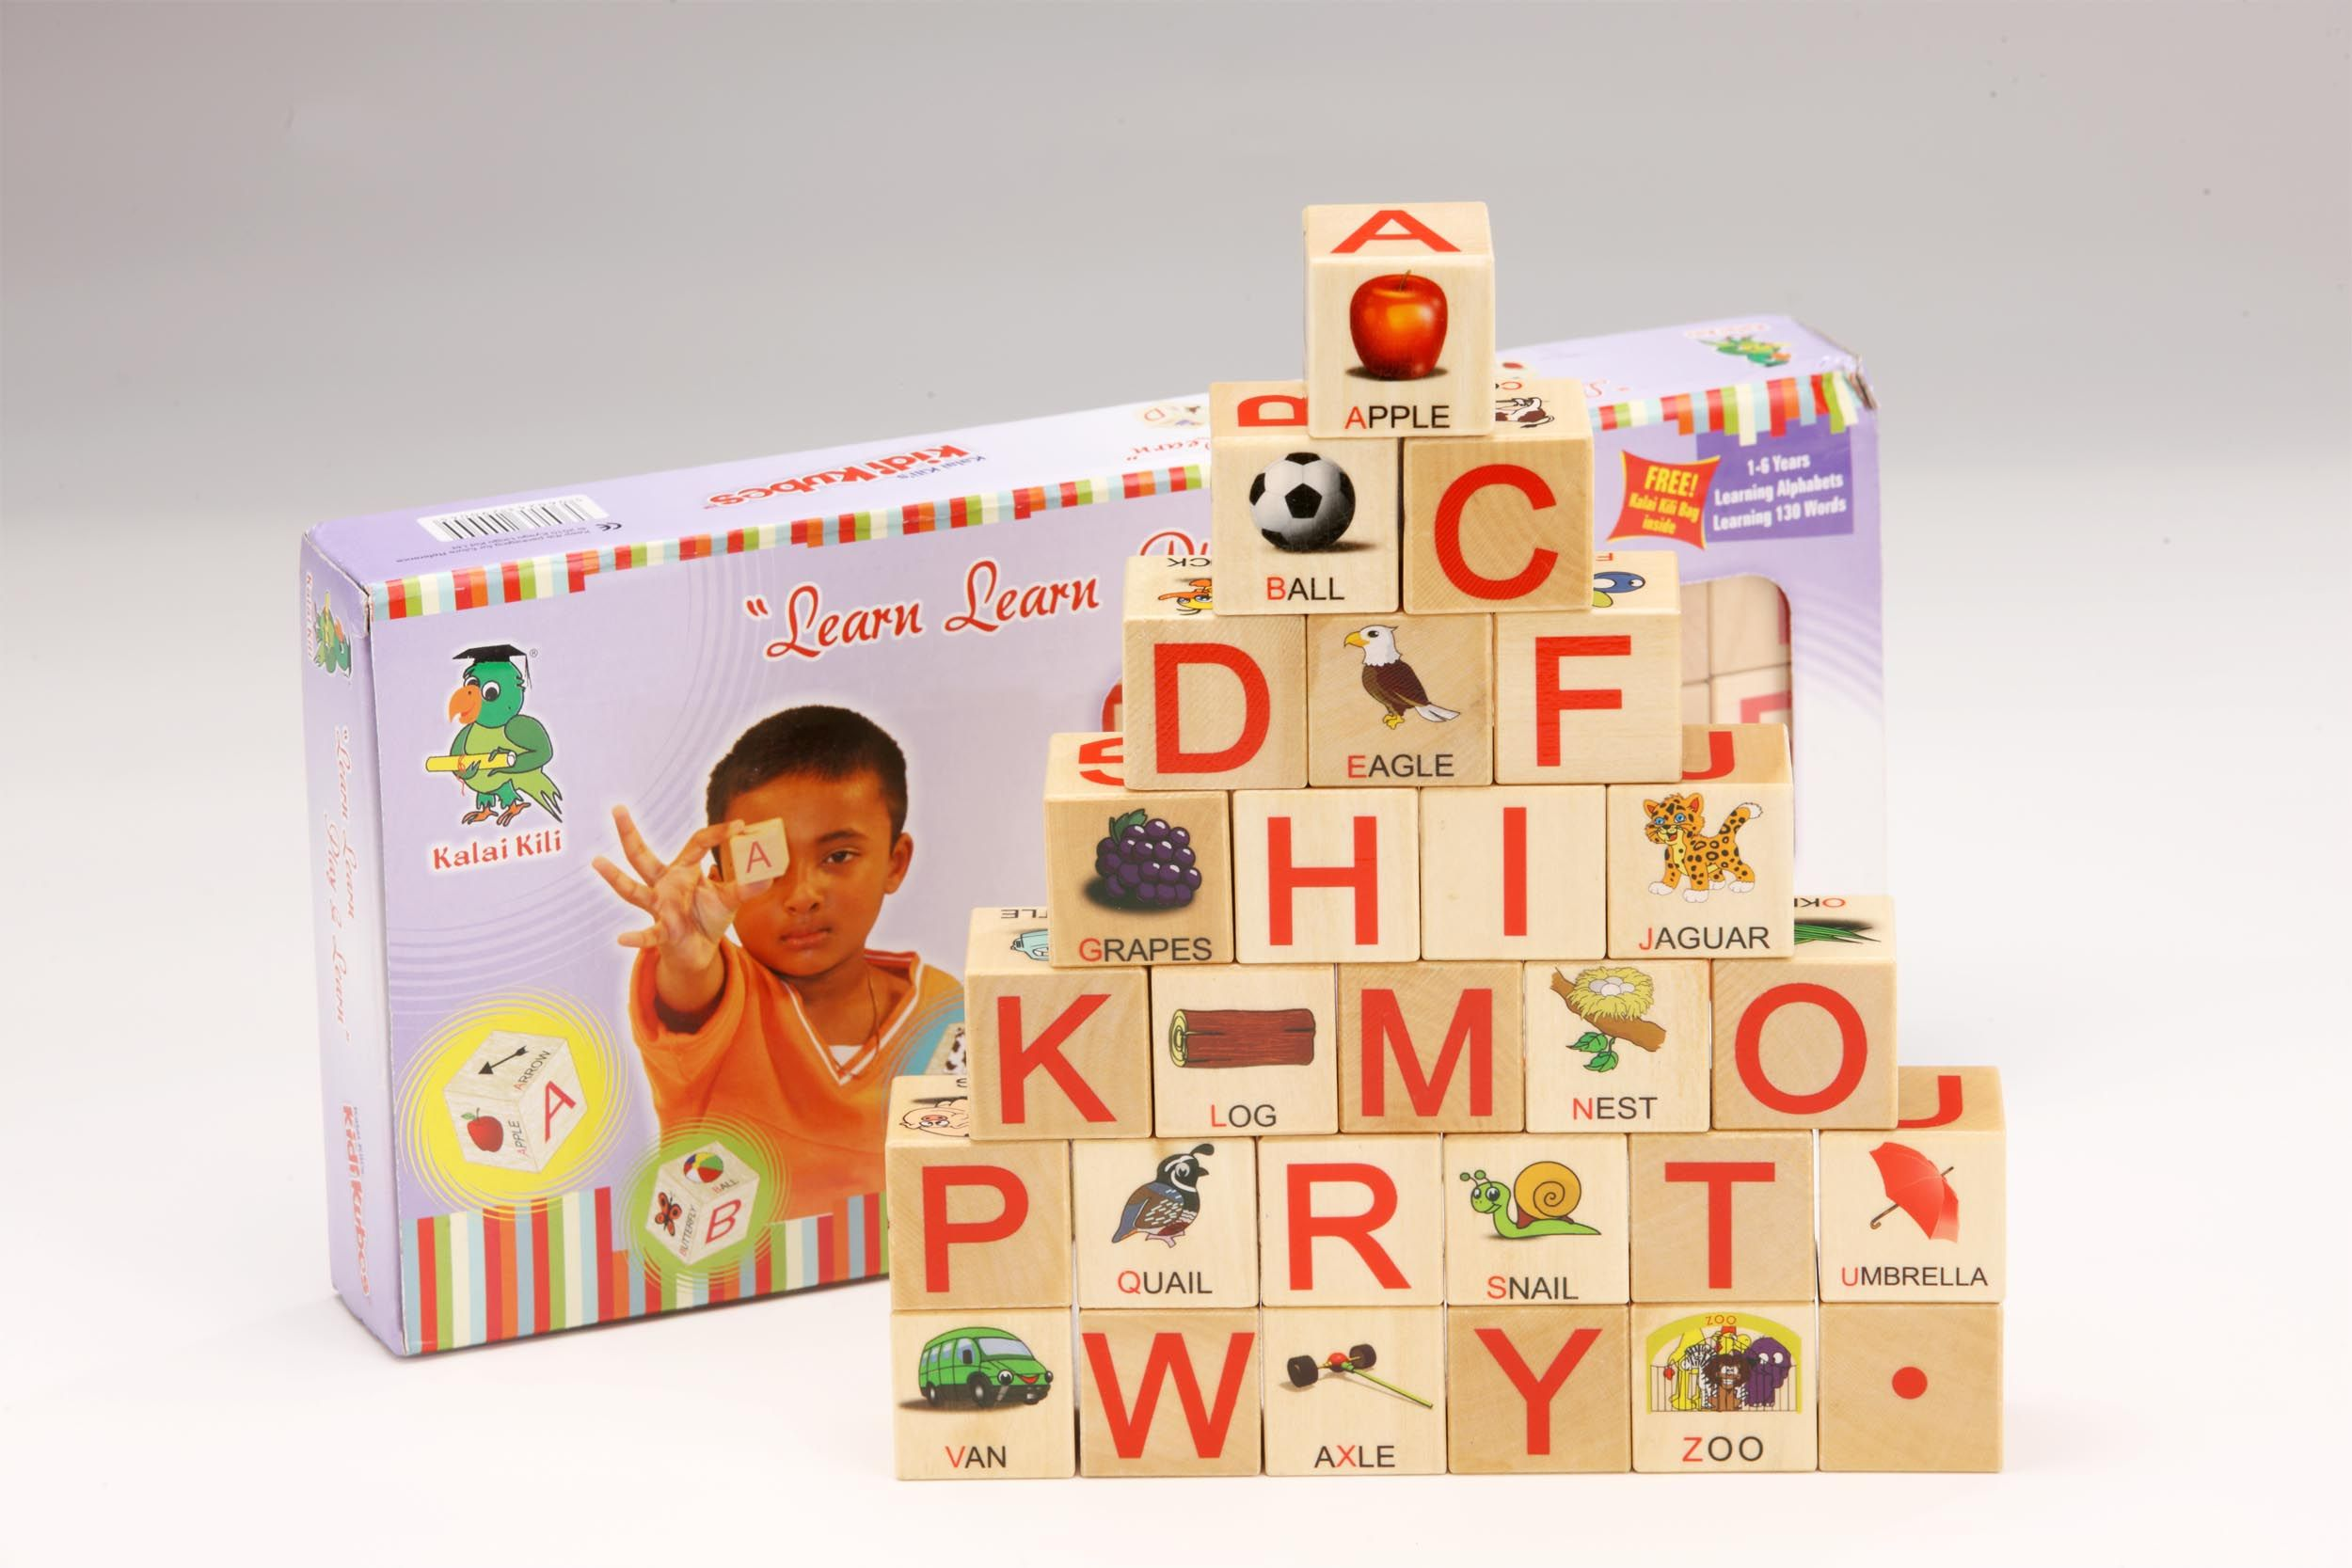 English Alphabet (Upper Case) wooden blocks beautifully crafted with high quality printing and child safety that will immediately attract a child. Parents will fall in love with these cubes! So smooth & colourful